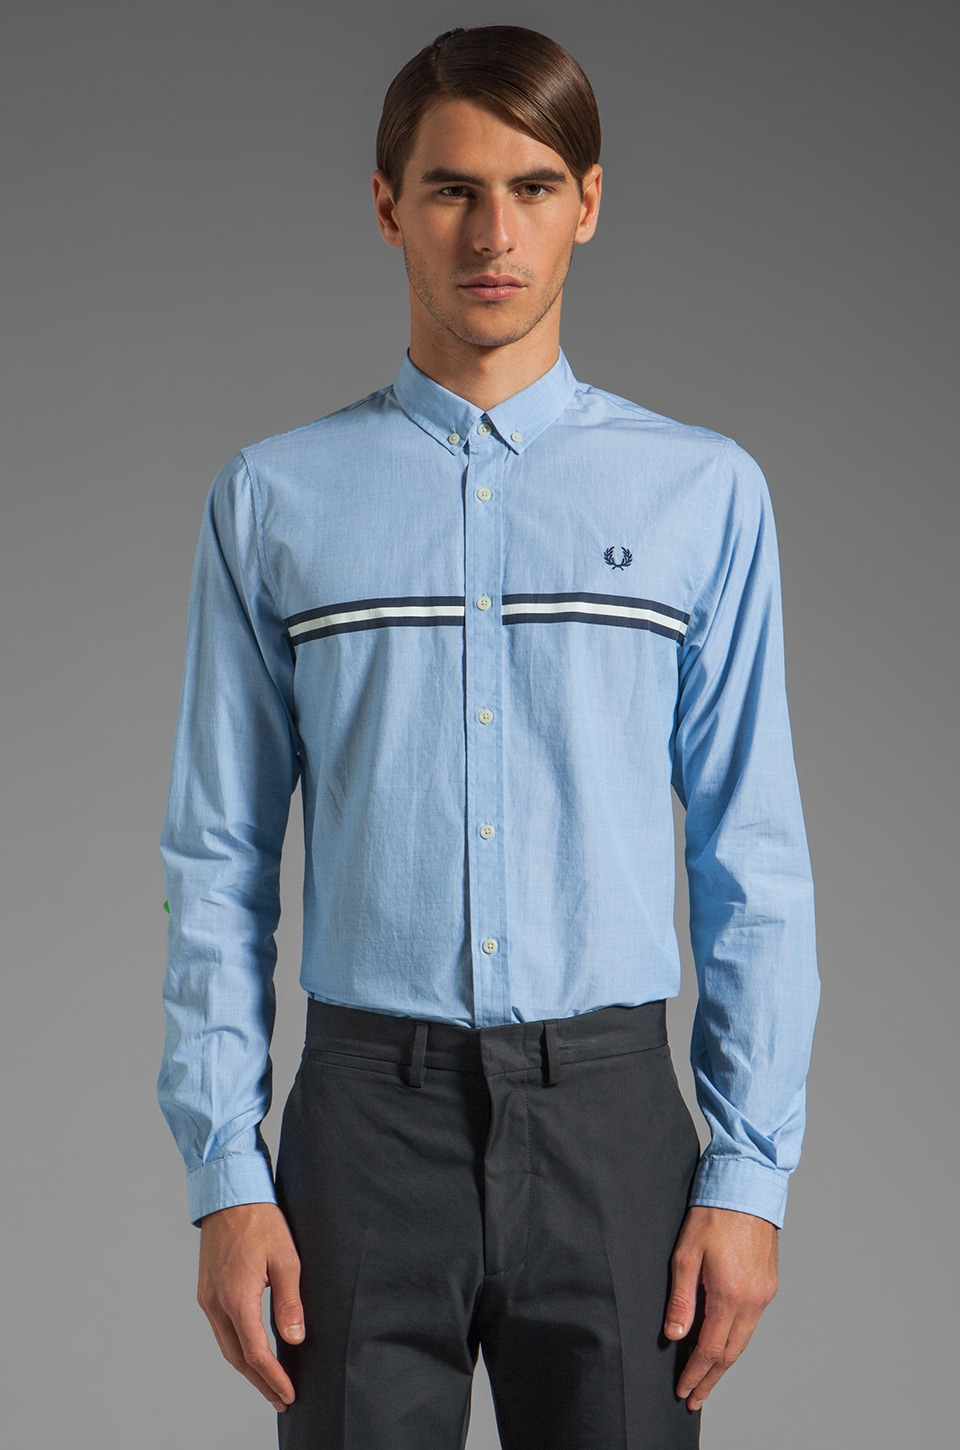 Fred Perry Printed Chest Tipped Shirt in Turquoise